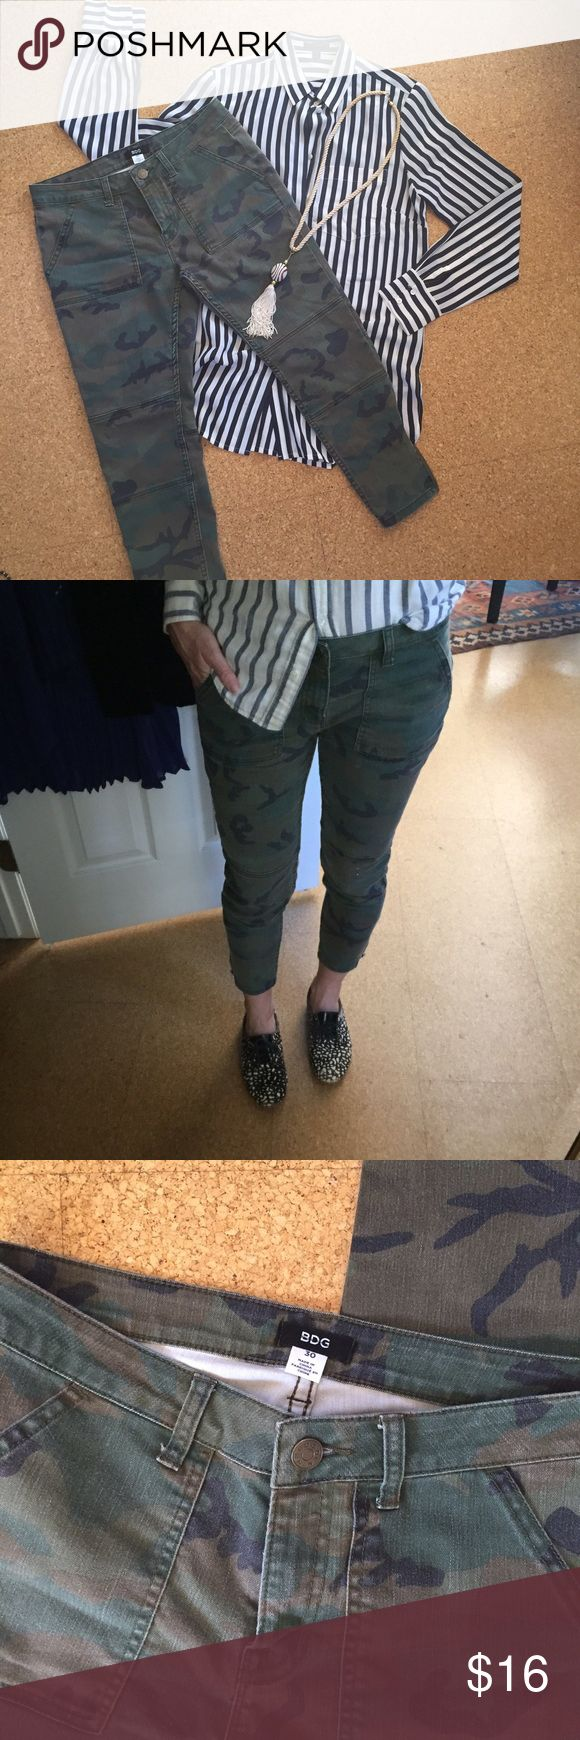 Camouflage Skinny Jeans Camo BDG brand Capri ankle skinnies. Too big for me :( but so cute. Gently preloved - worn a handful of times. Urban Outfitters Jeans Ankle & Cropped